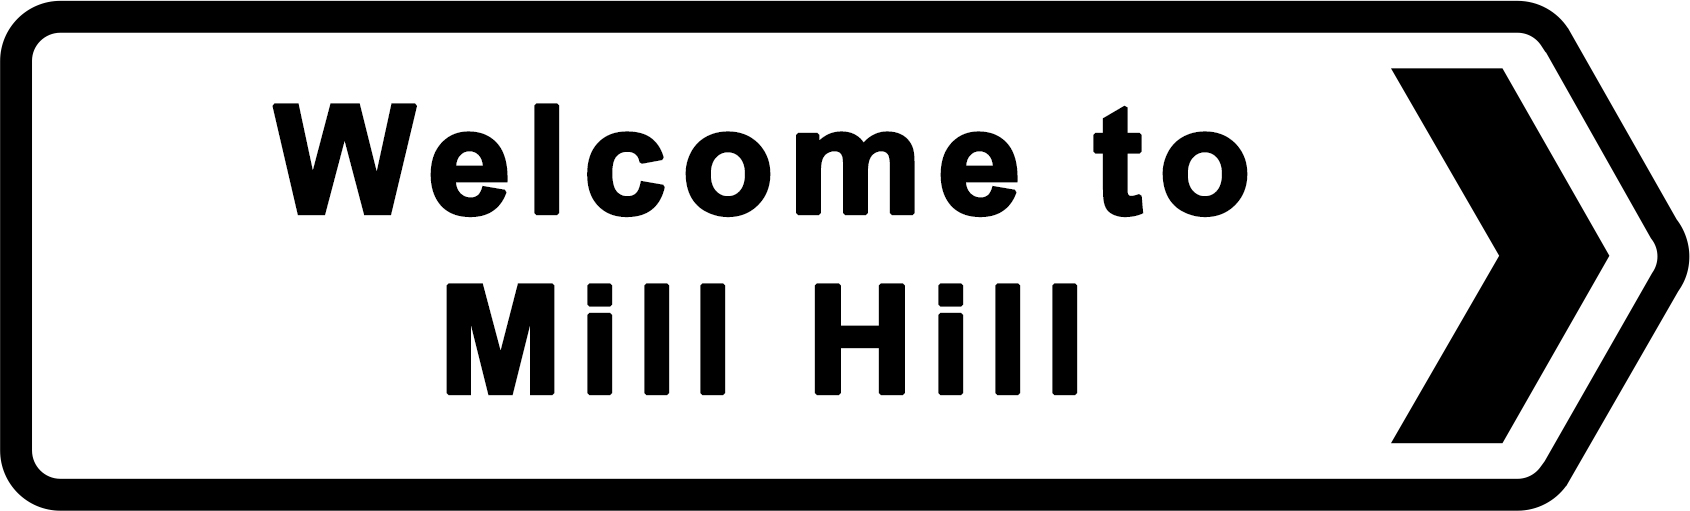 Mill Hill Village from the ridgeway (2009) - Cheap Driving Schools Lessons in Mill Hill, NW7, London borough of Barnet, North West London, Greater London